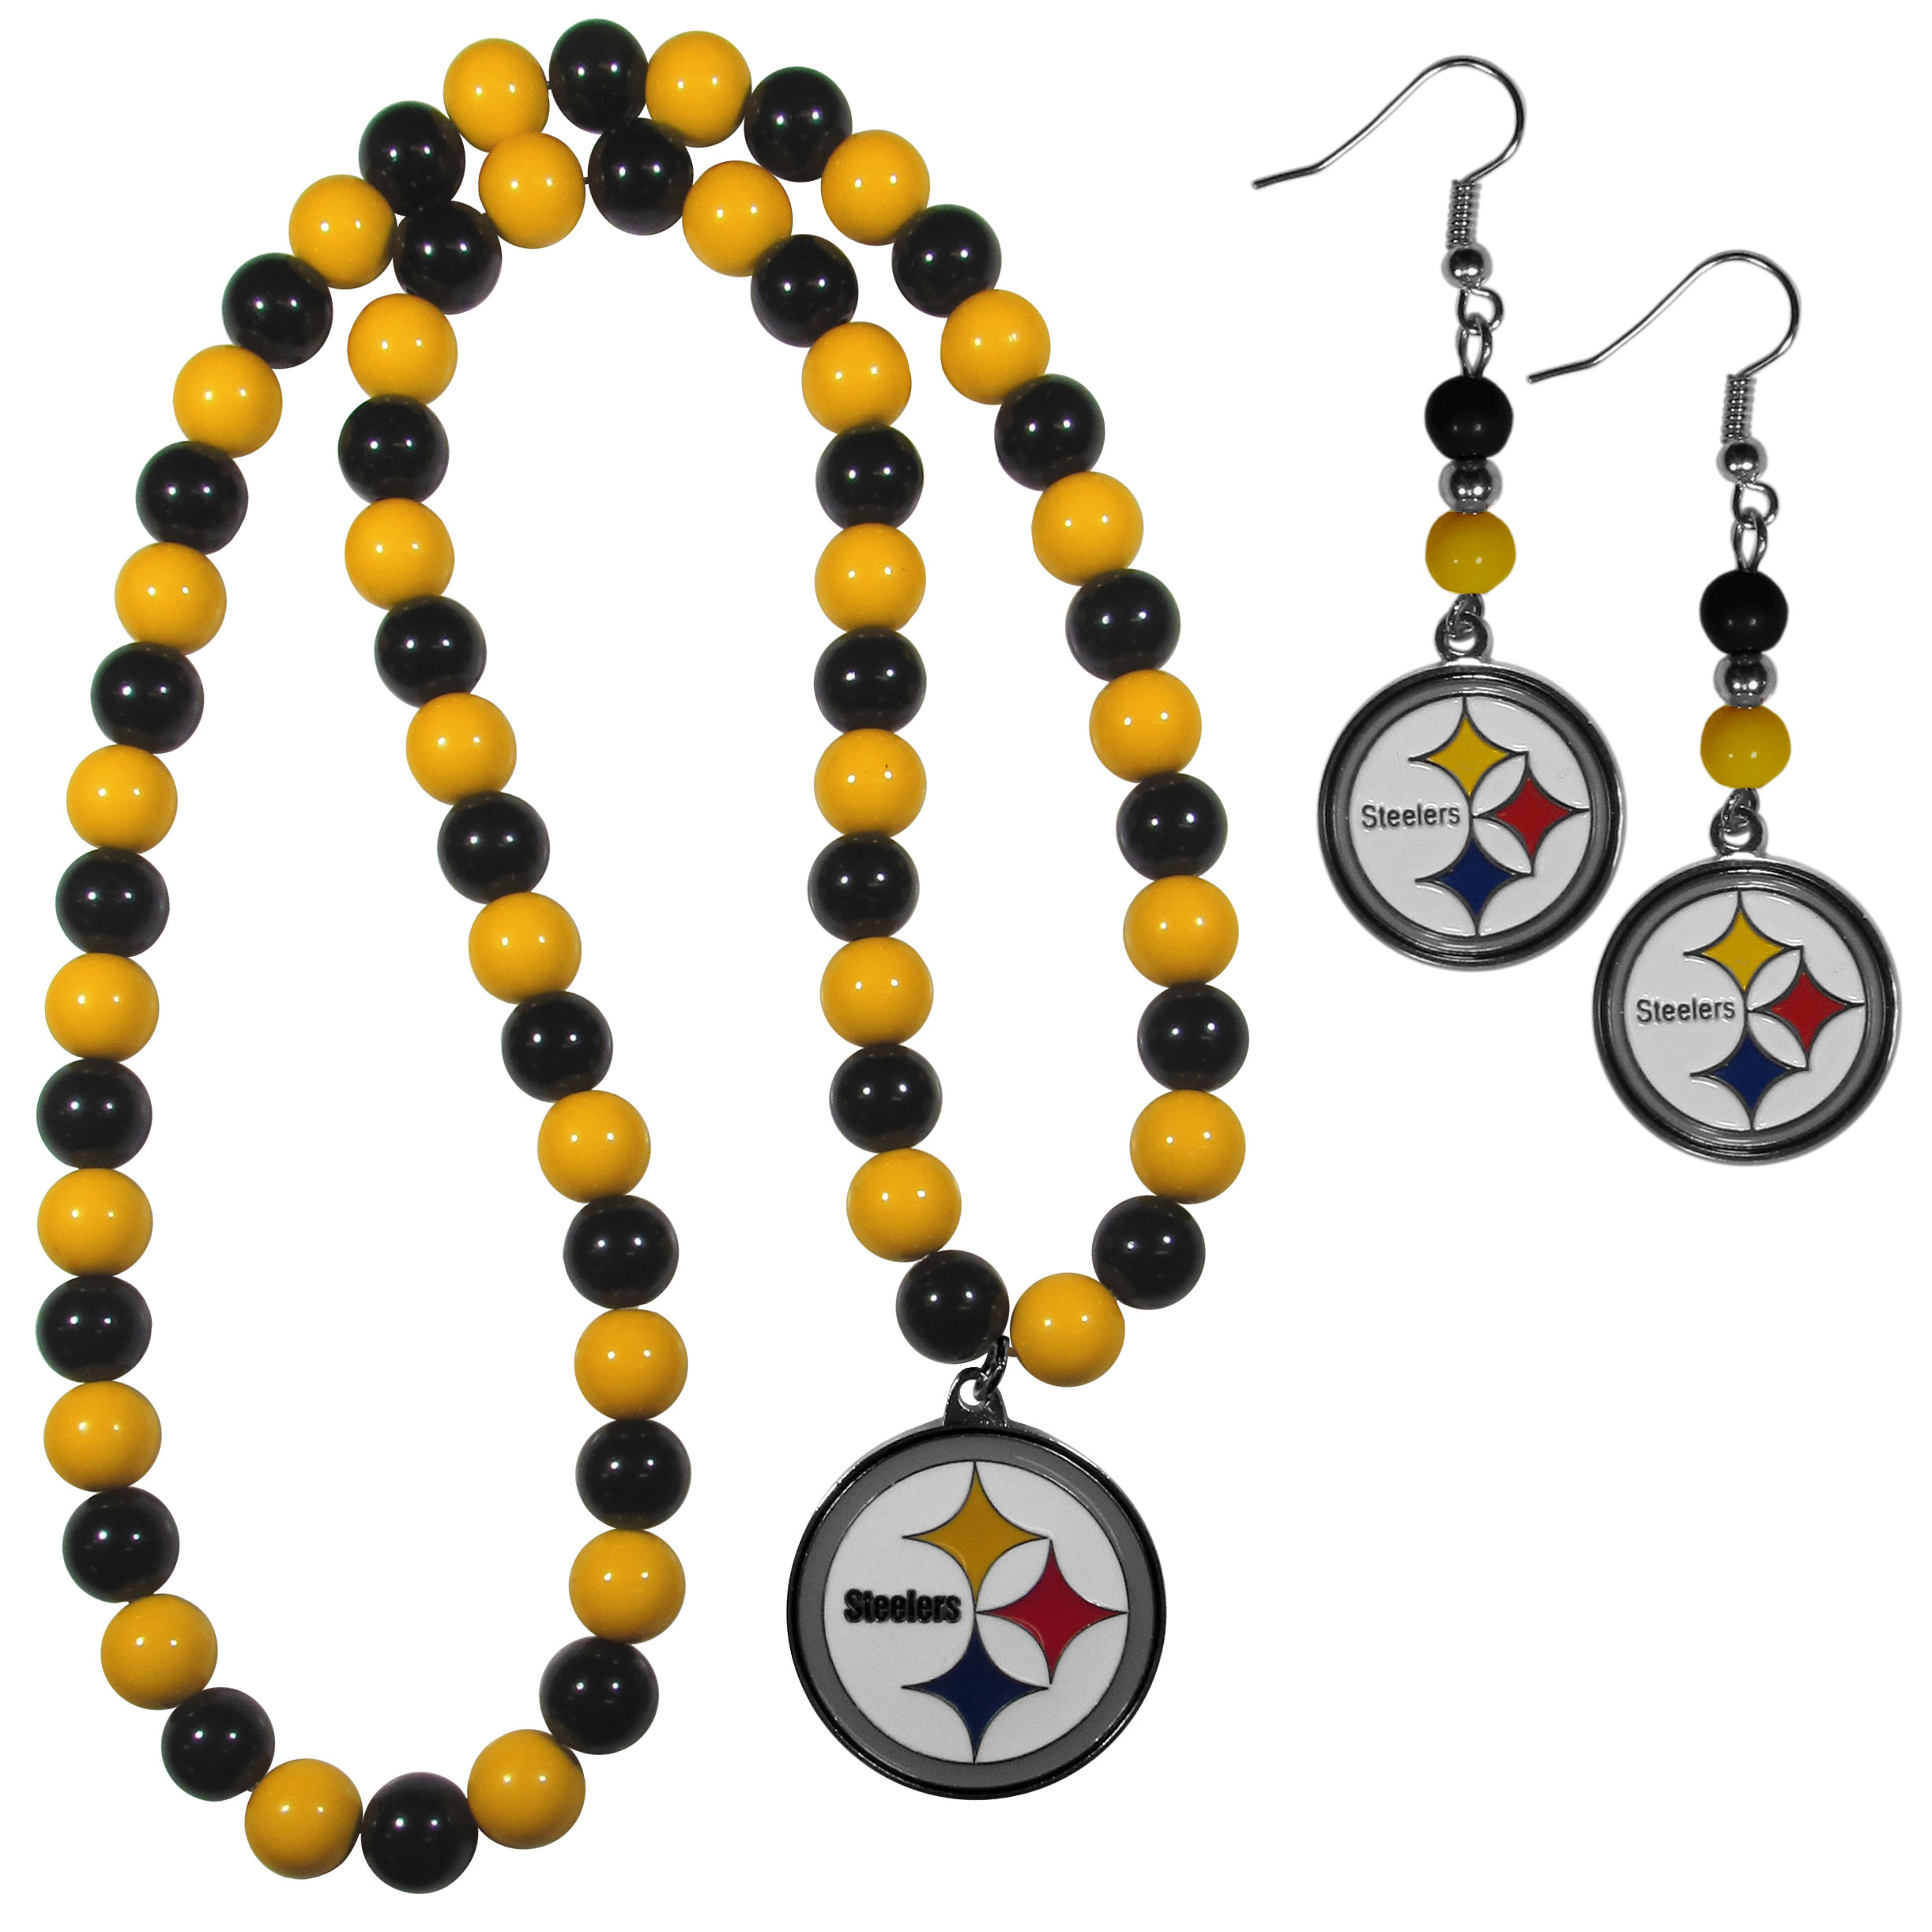 Pittsburgh Steelers Fan Bead Earrings and Necklace Set - These fun and colorful Pittsburgh Steelers fan bead jewelry pieces are an eyecatching way to show off your team spirit. The earrings feature hypoallergenic, nickel free fishhook post and 2 team colored beads with a beautifully carved team charm to finish this attractive dangle look. The mathcing bracelet has alternating team colored beads on a stretch cord and features a matching team charm.